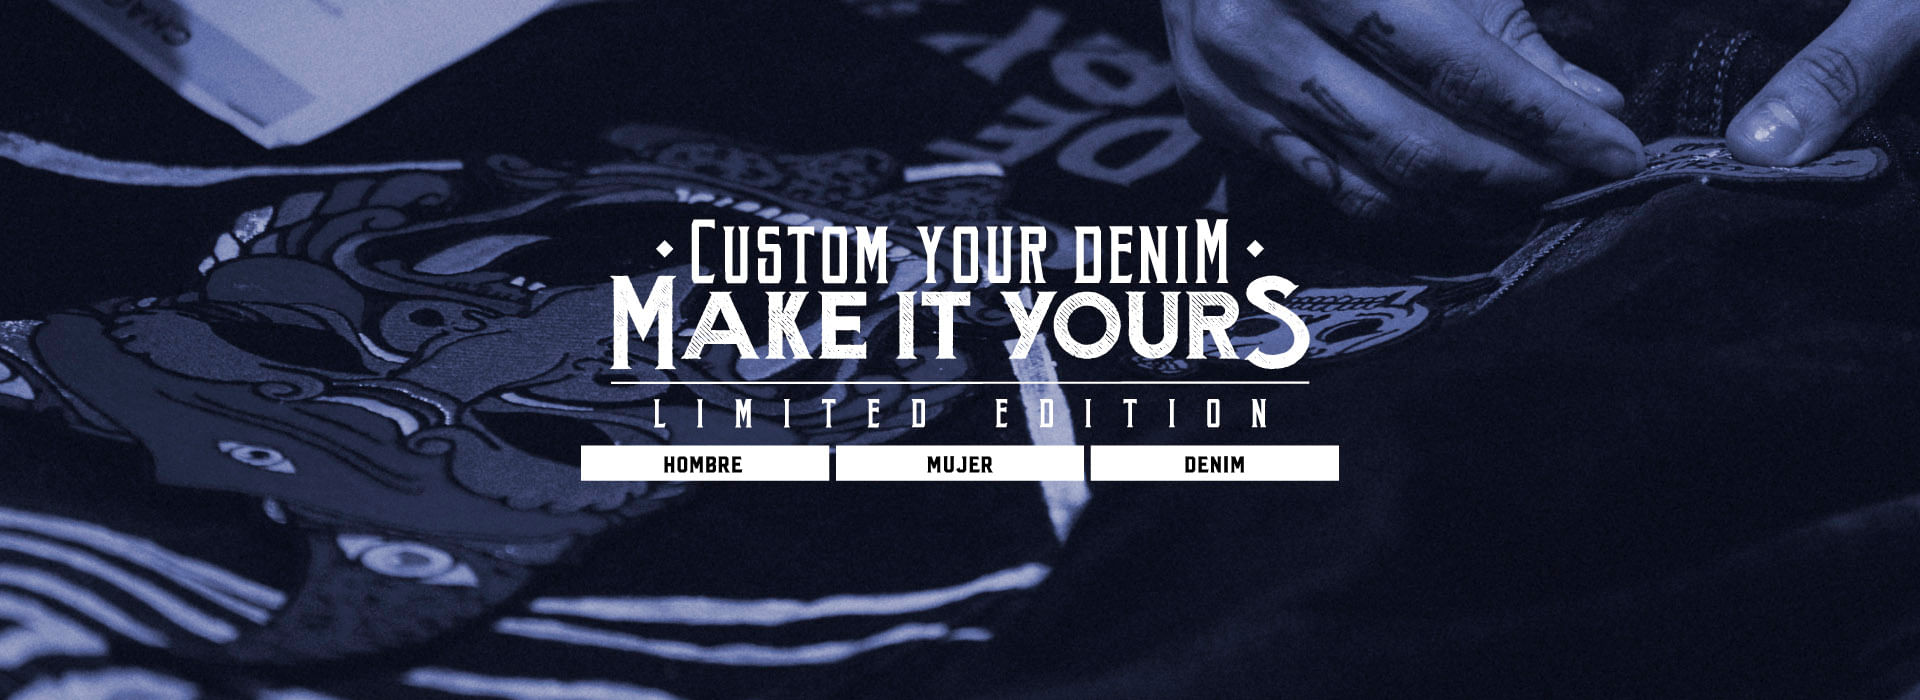 Custom Your Denim